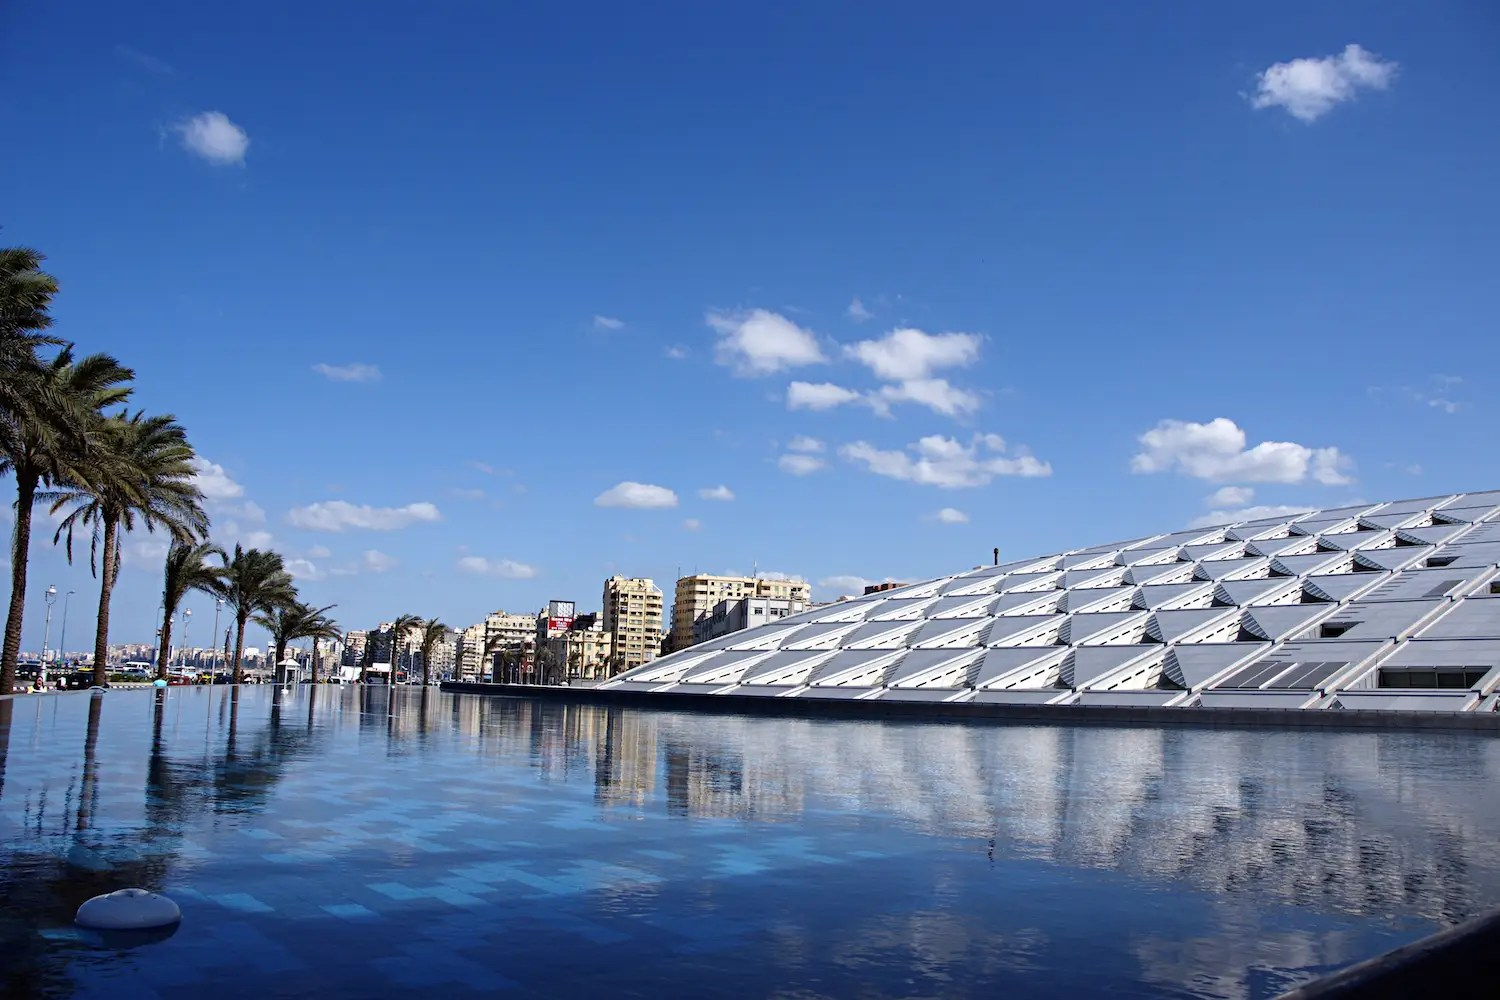 50. The stylish Bibliotheca Alexandrina in Egypt has the capacity to hold more than 4 million books.